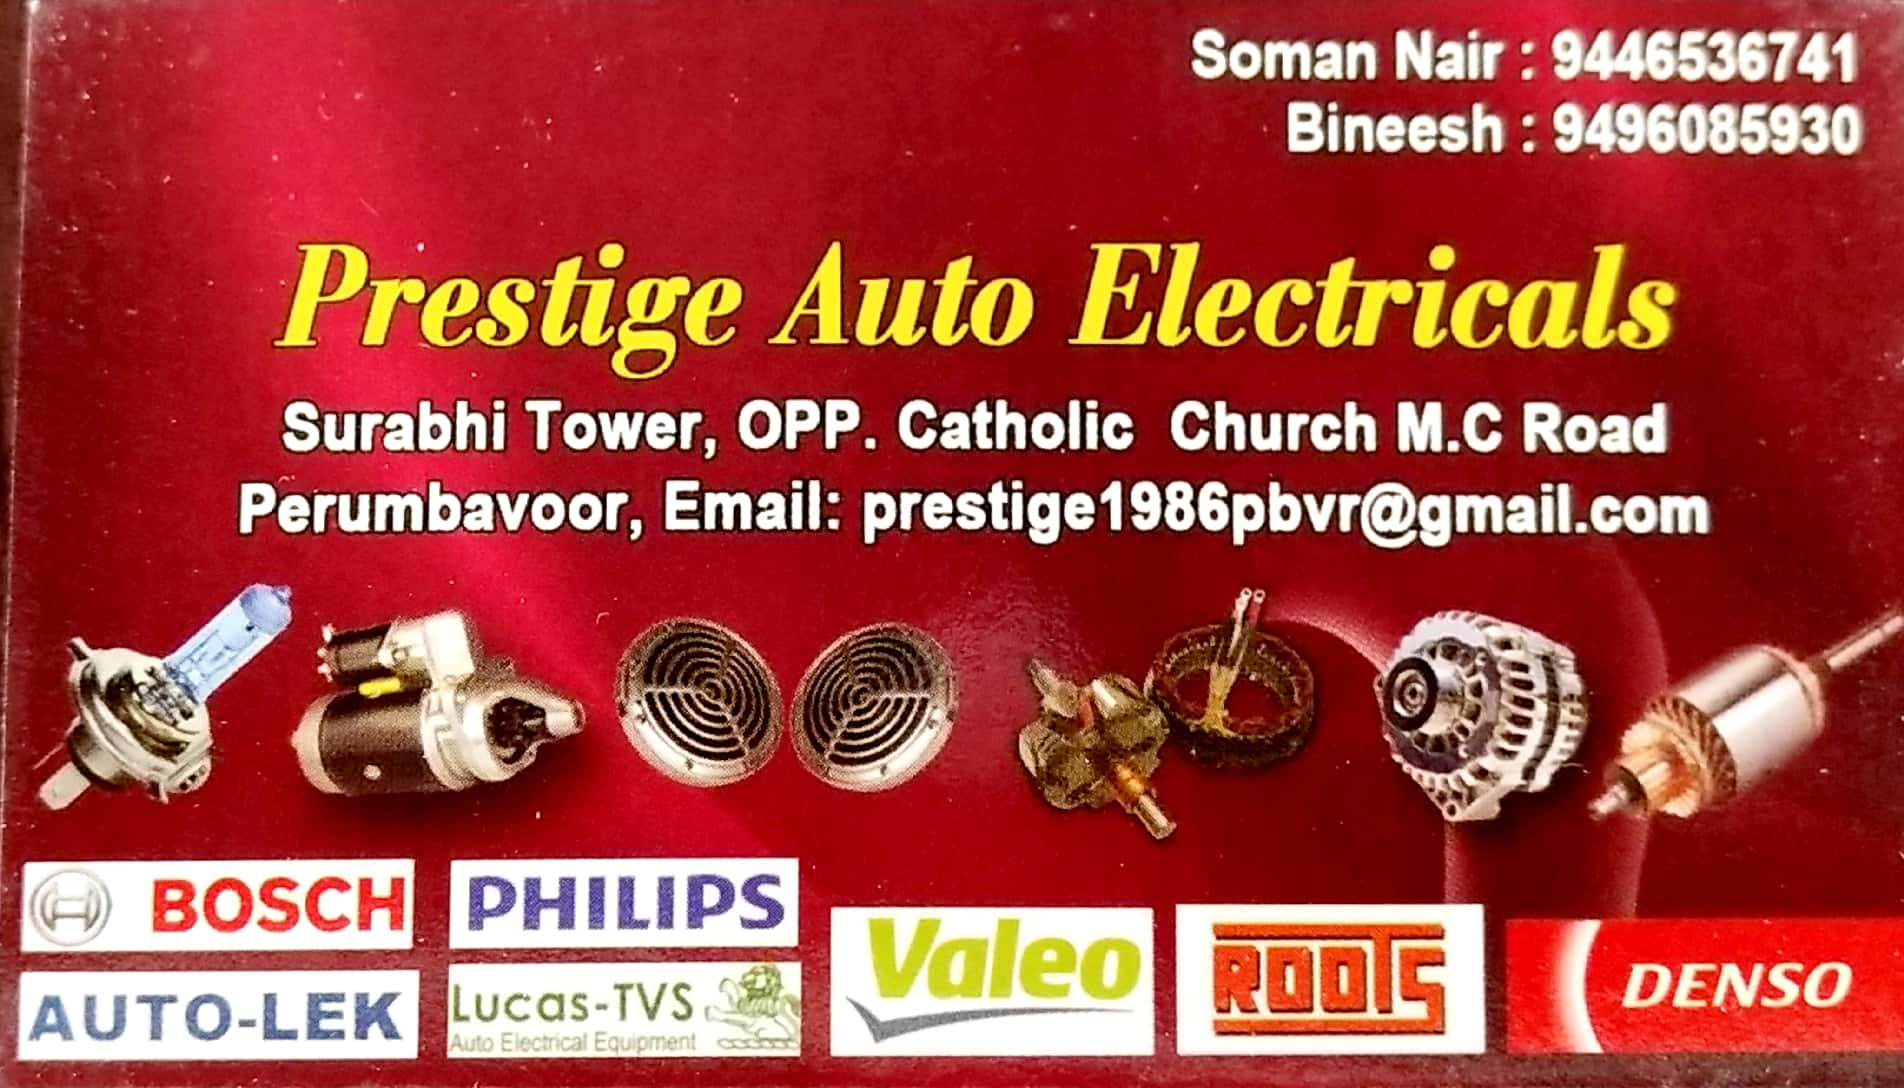 PRESTIGE AUTO ELECTRICALS, LUBES AND SPARE PARTS,  service in Perumbavoor, Ernakulam